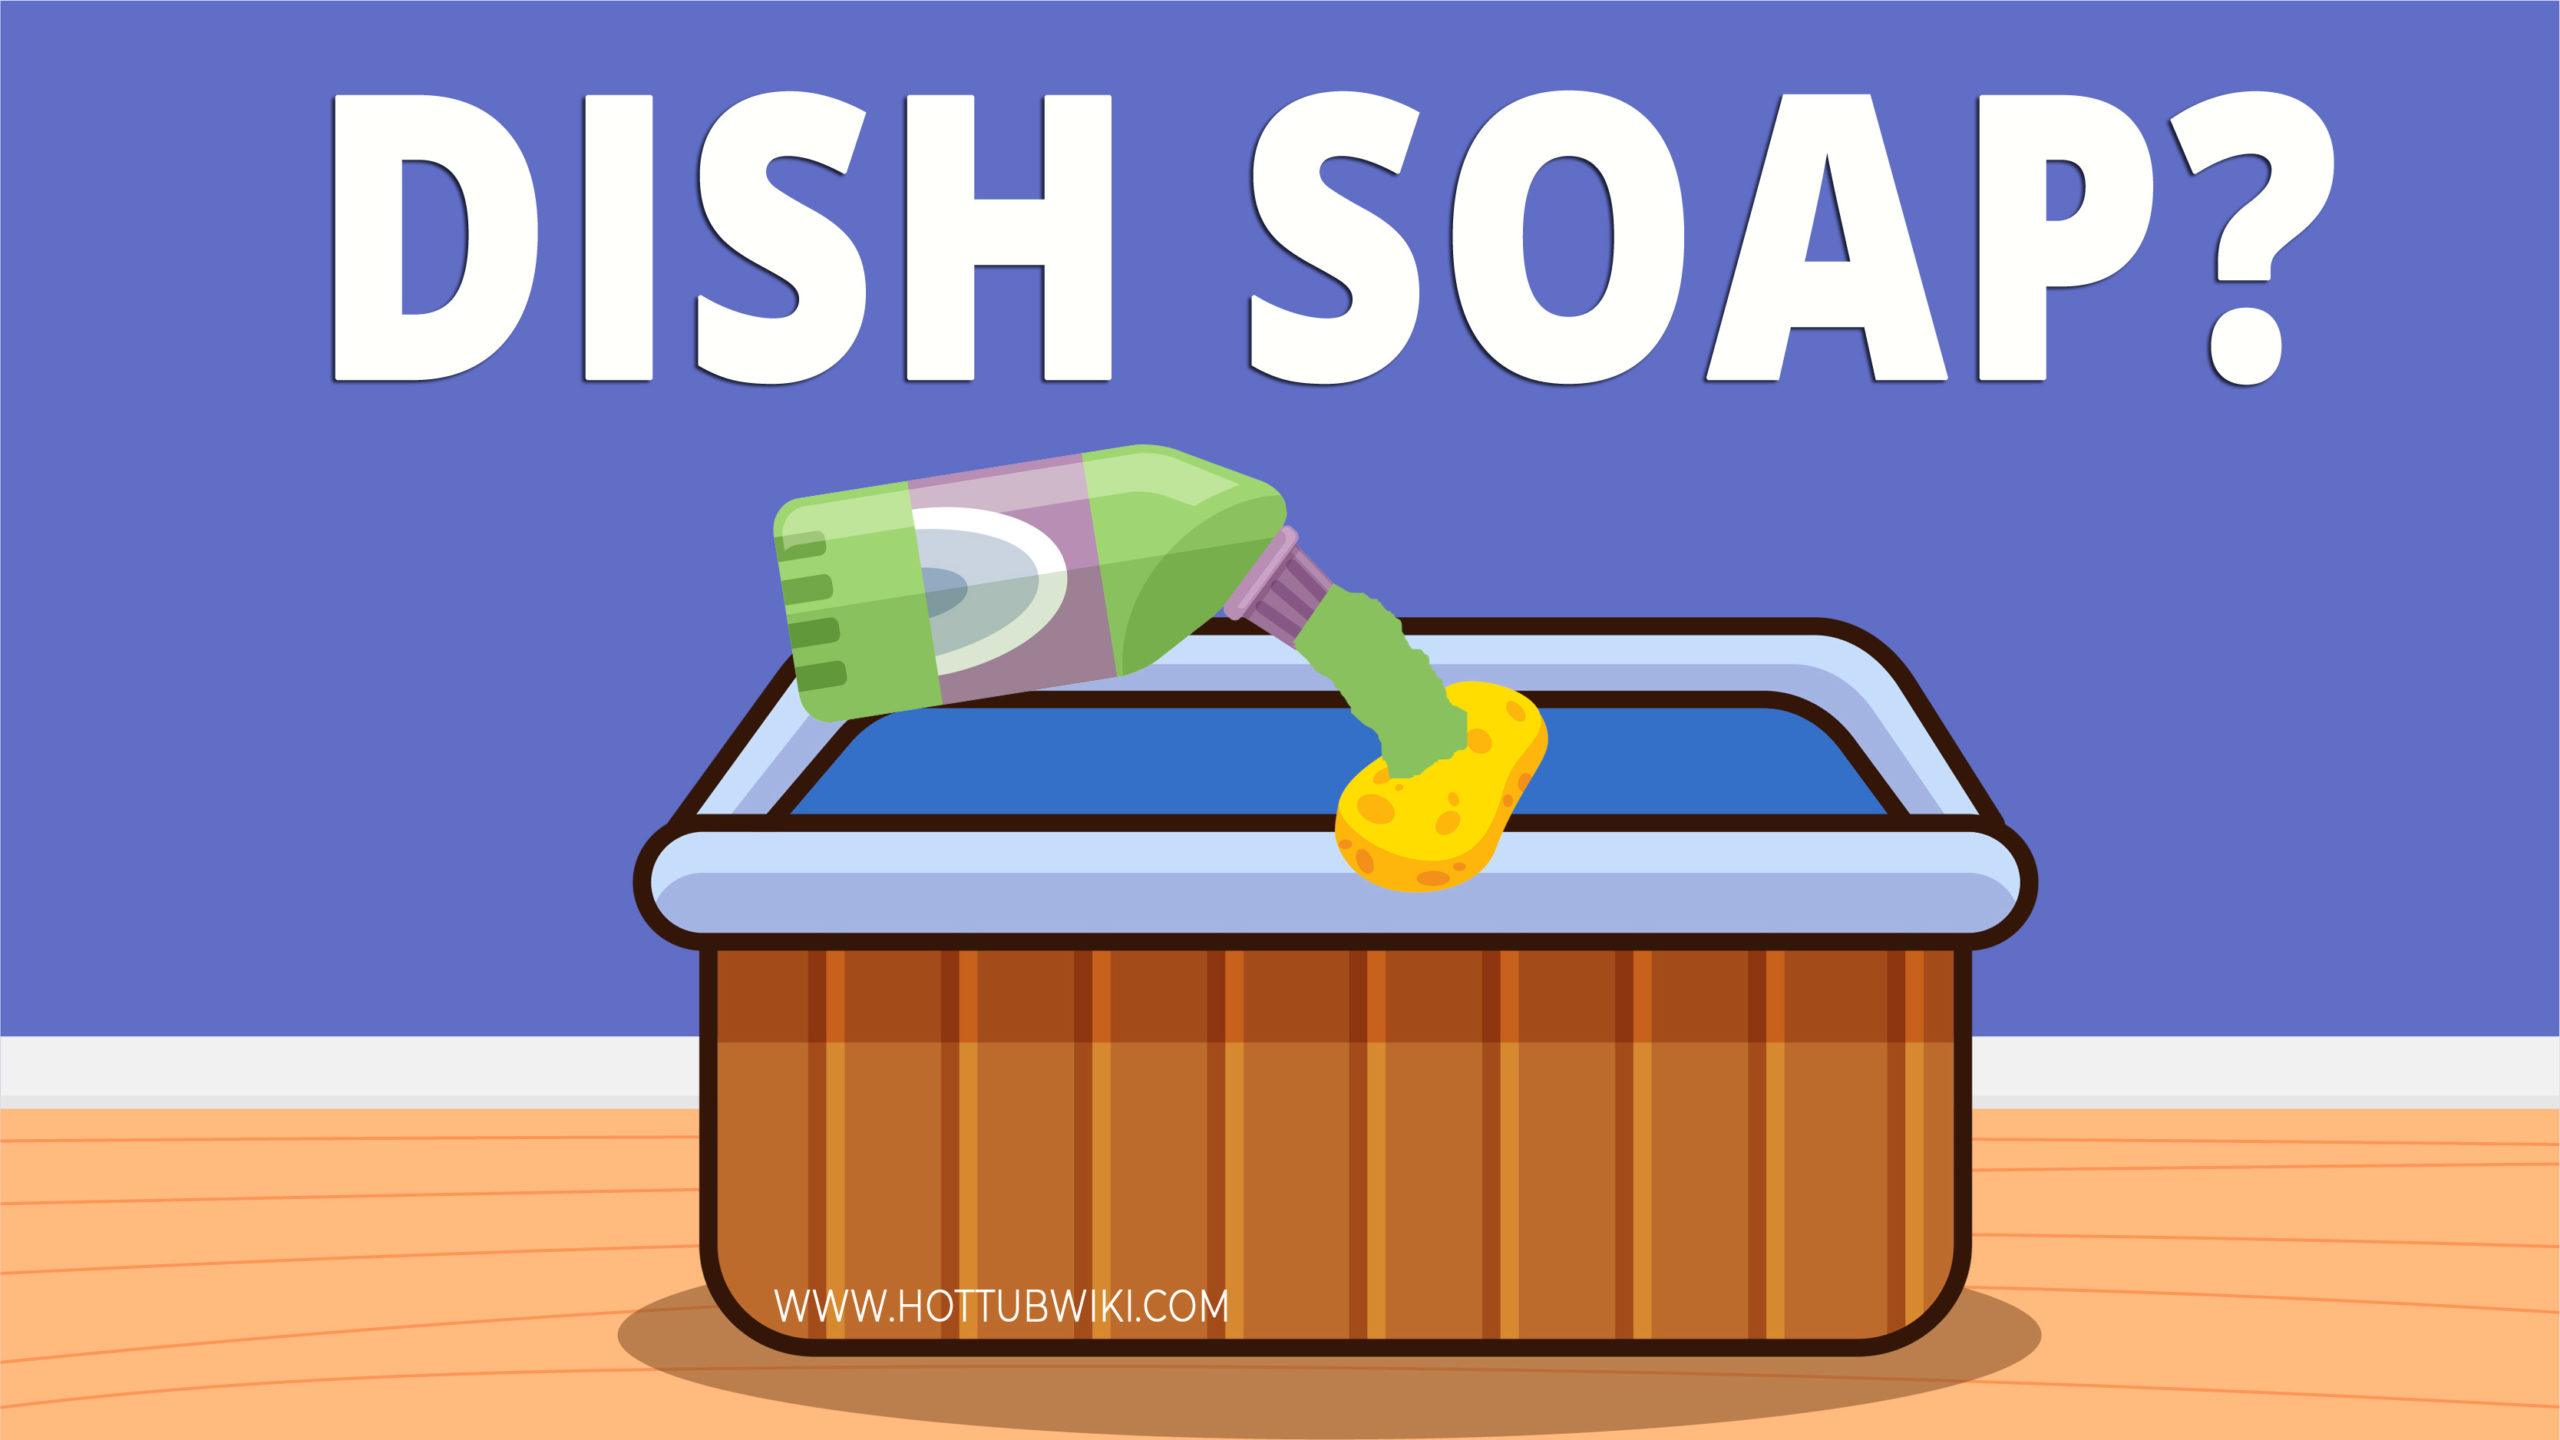 Can You Use Dish Soap to Clean a Hot Tub?